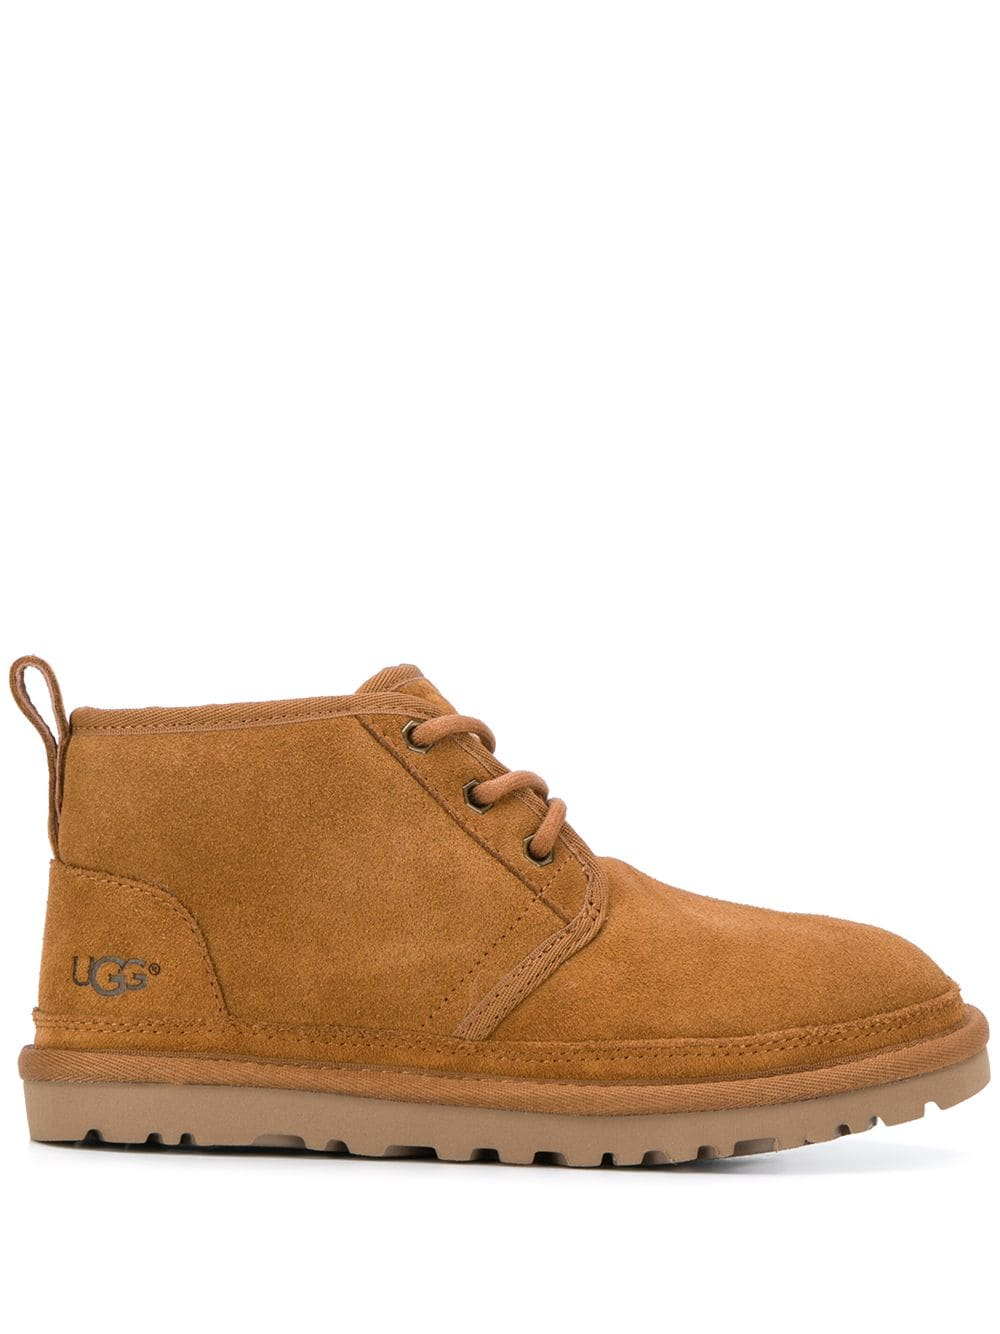 Neumel Classic Boots